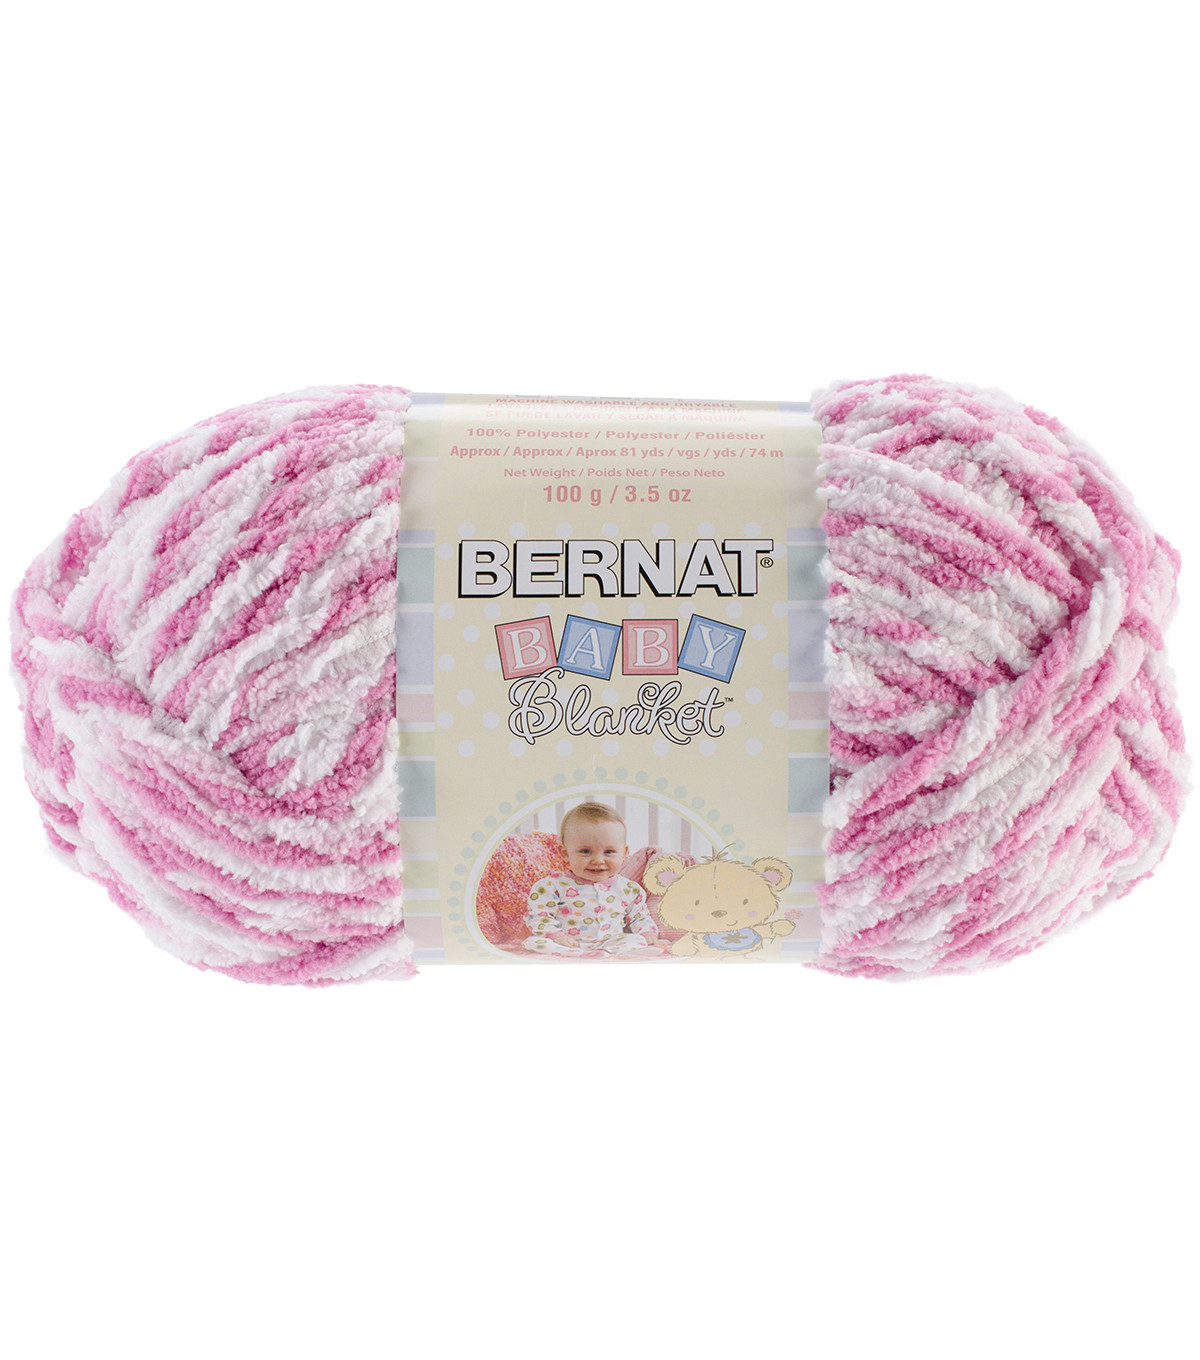 Elegant Bernat Baby Blanket Twist Yarn Baby Yarn Colors Of Wonderful 38 Images Baby Yarn Colors